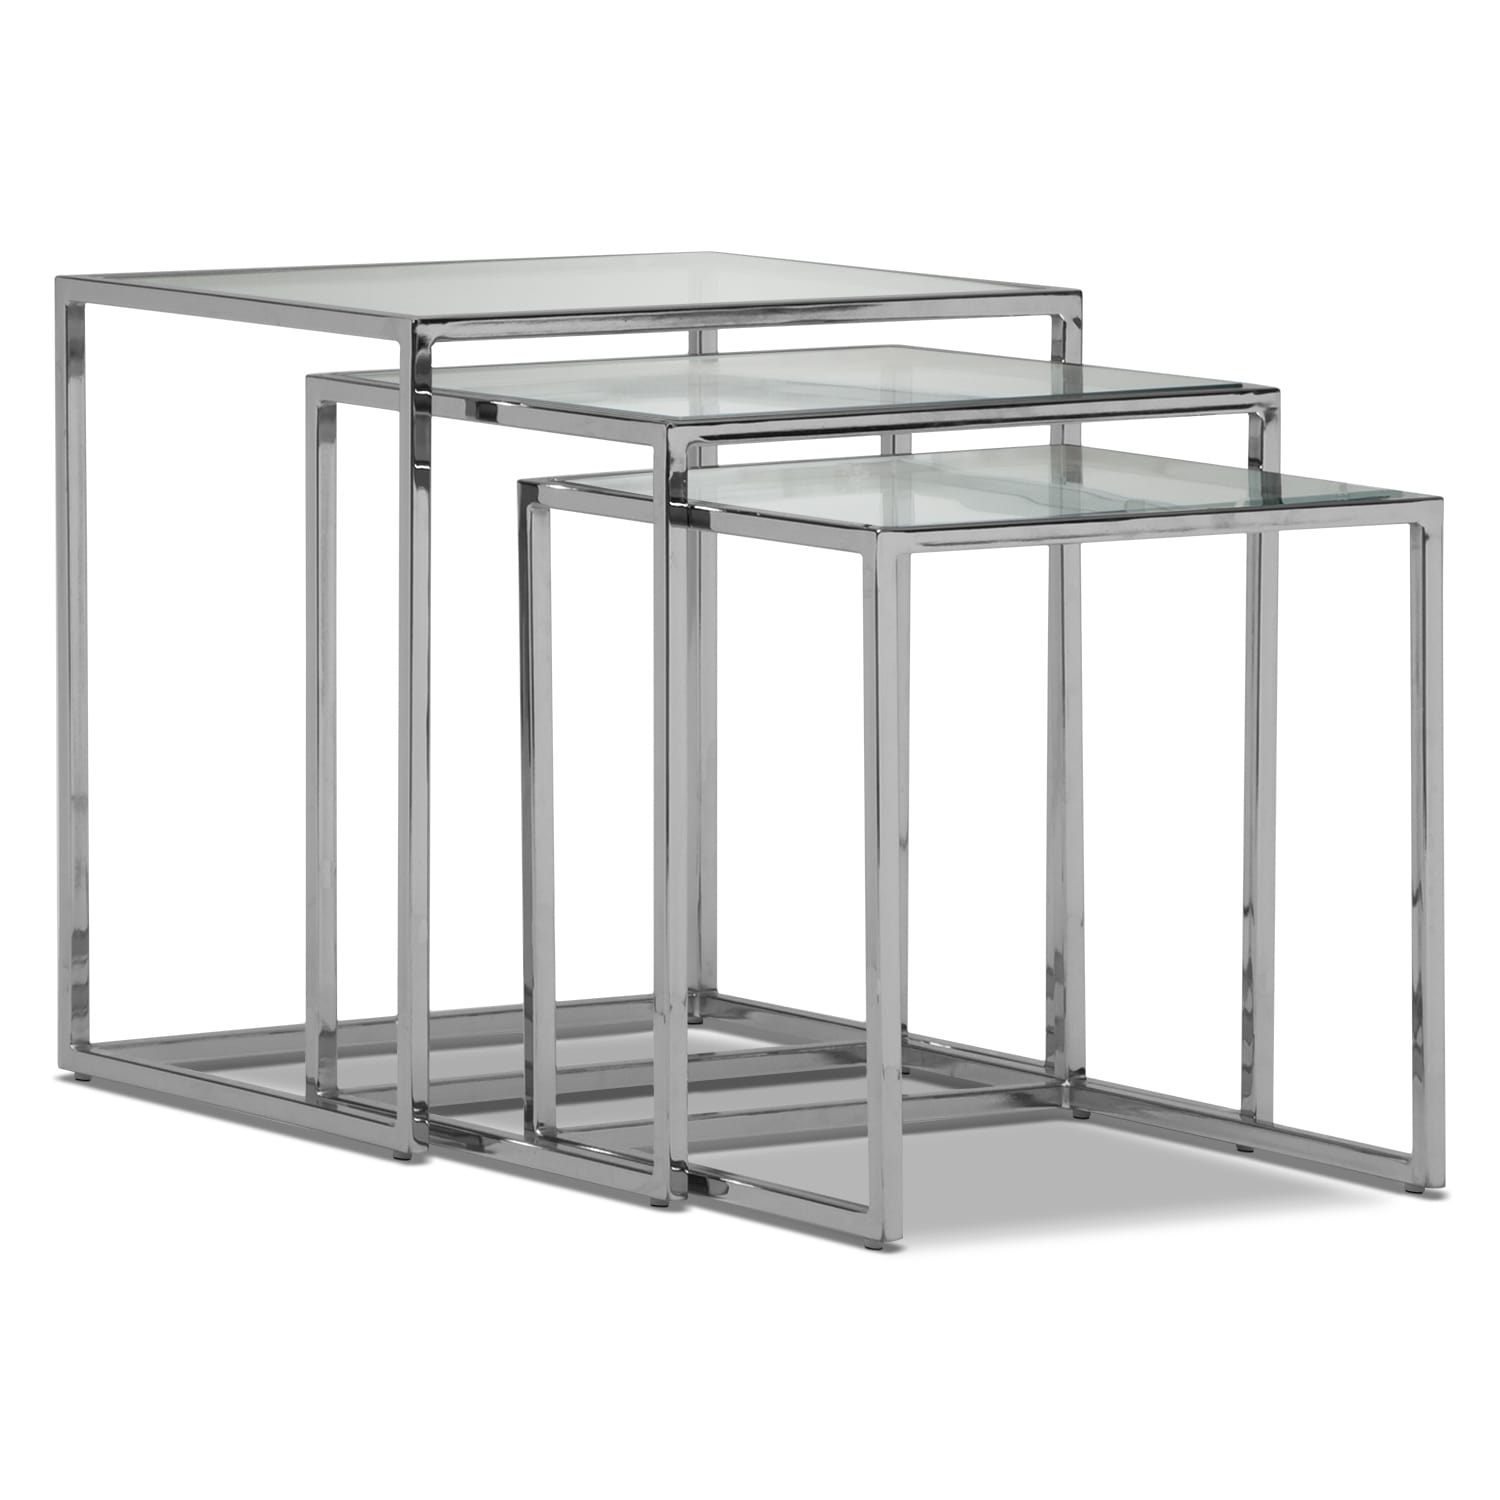 Accent and Occasional Furniture - Illusion Nesting Tables - Silver